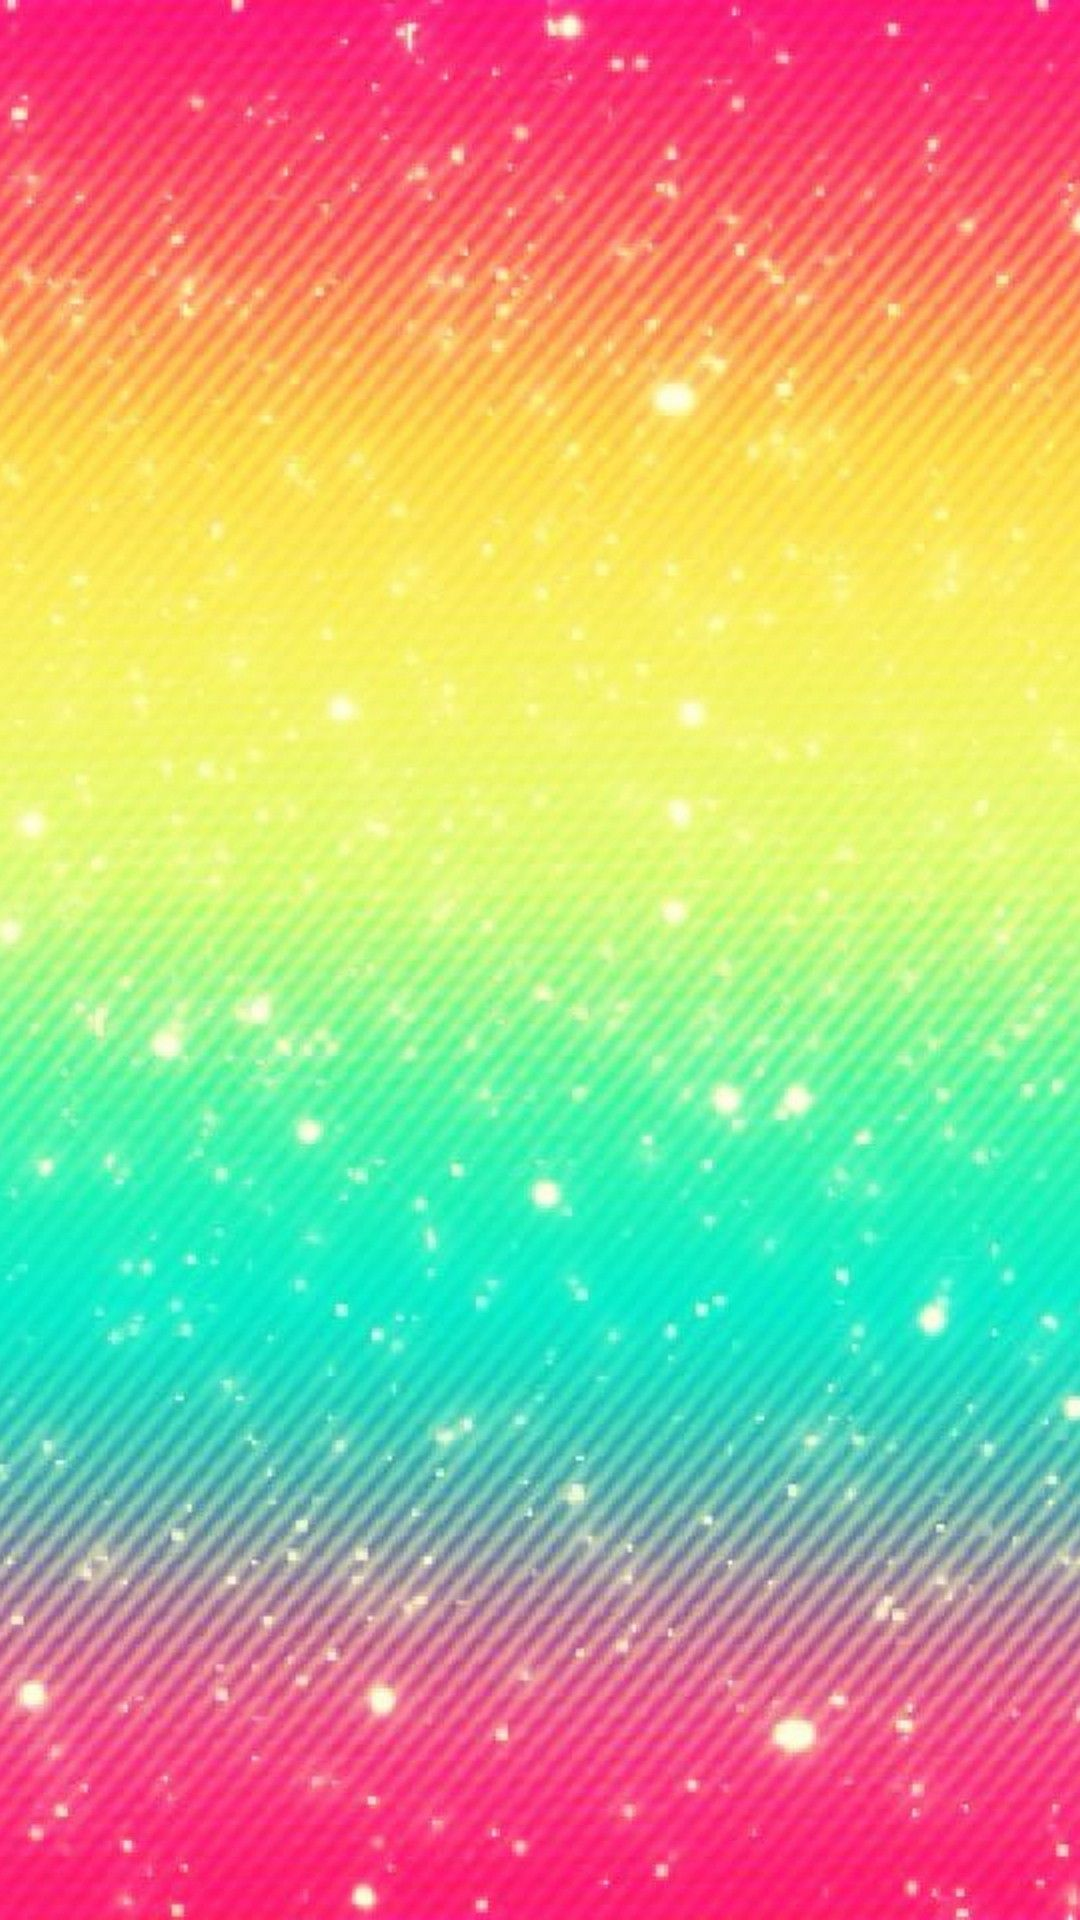 Rainbow Wallpaper Cute Girly For Android Best Hd Wallpapers